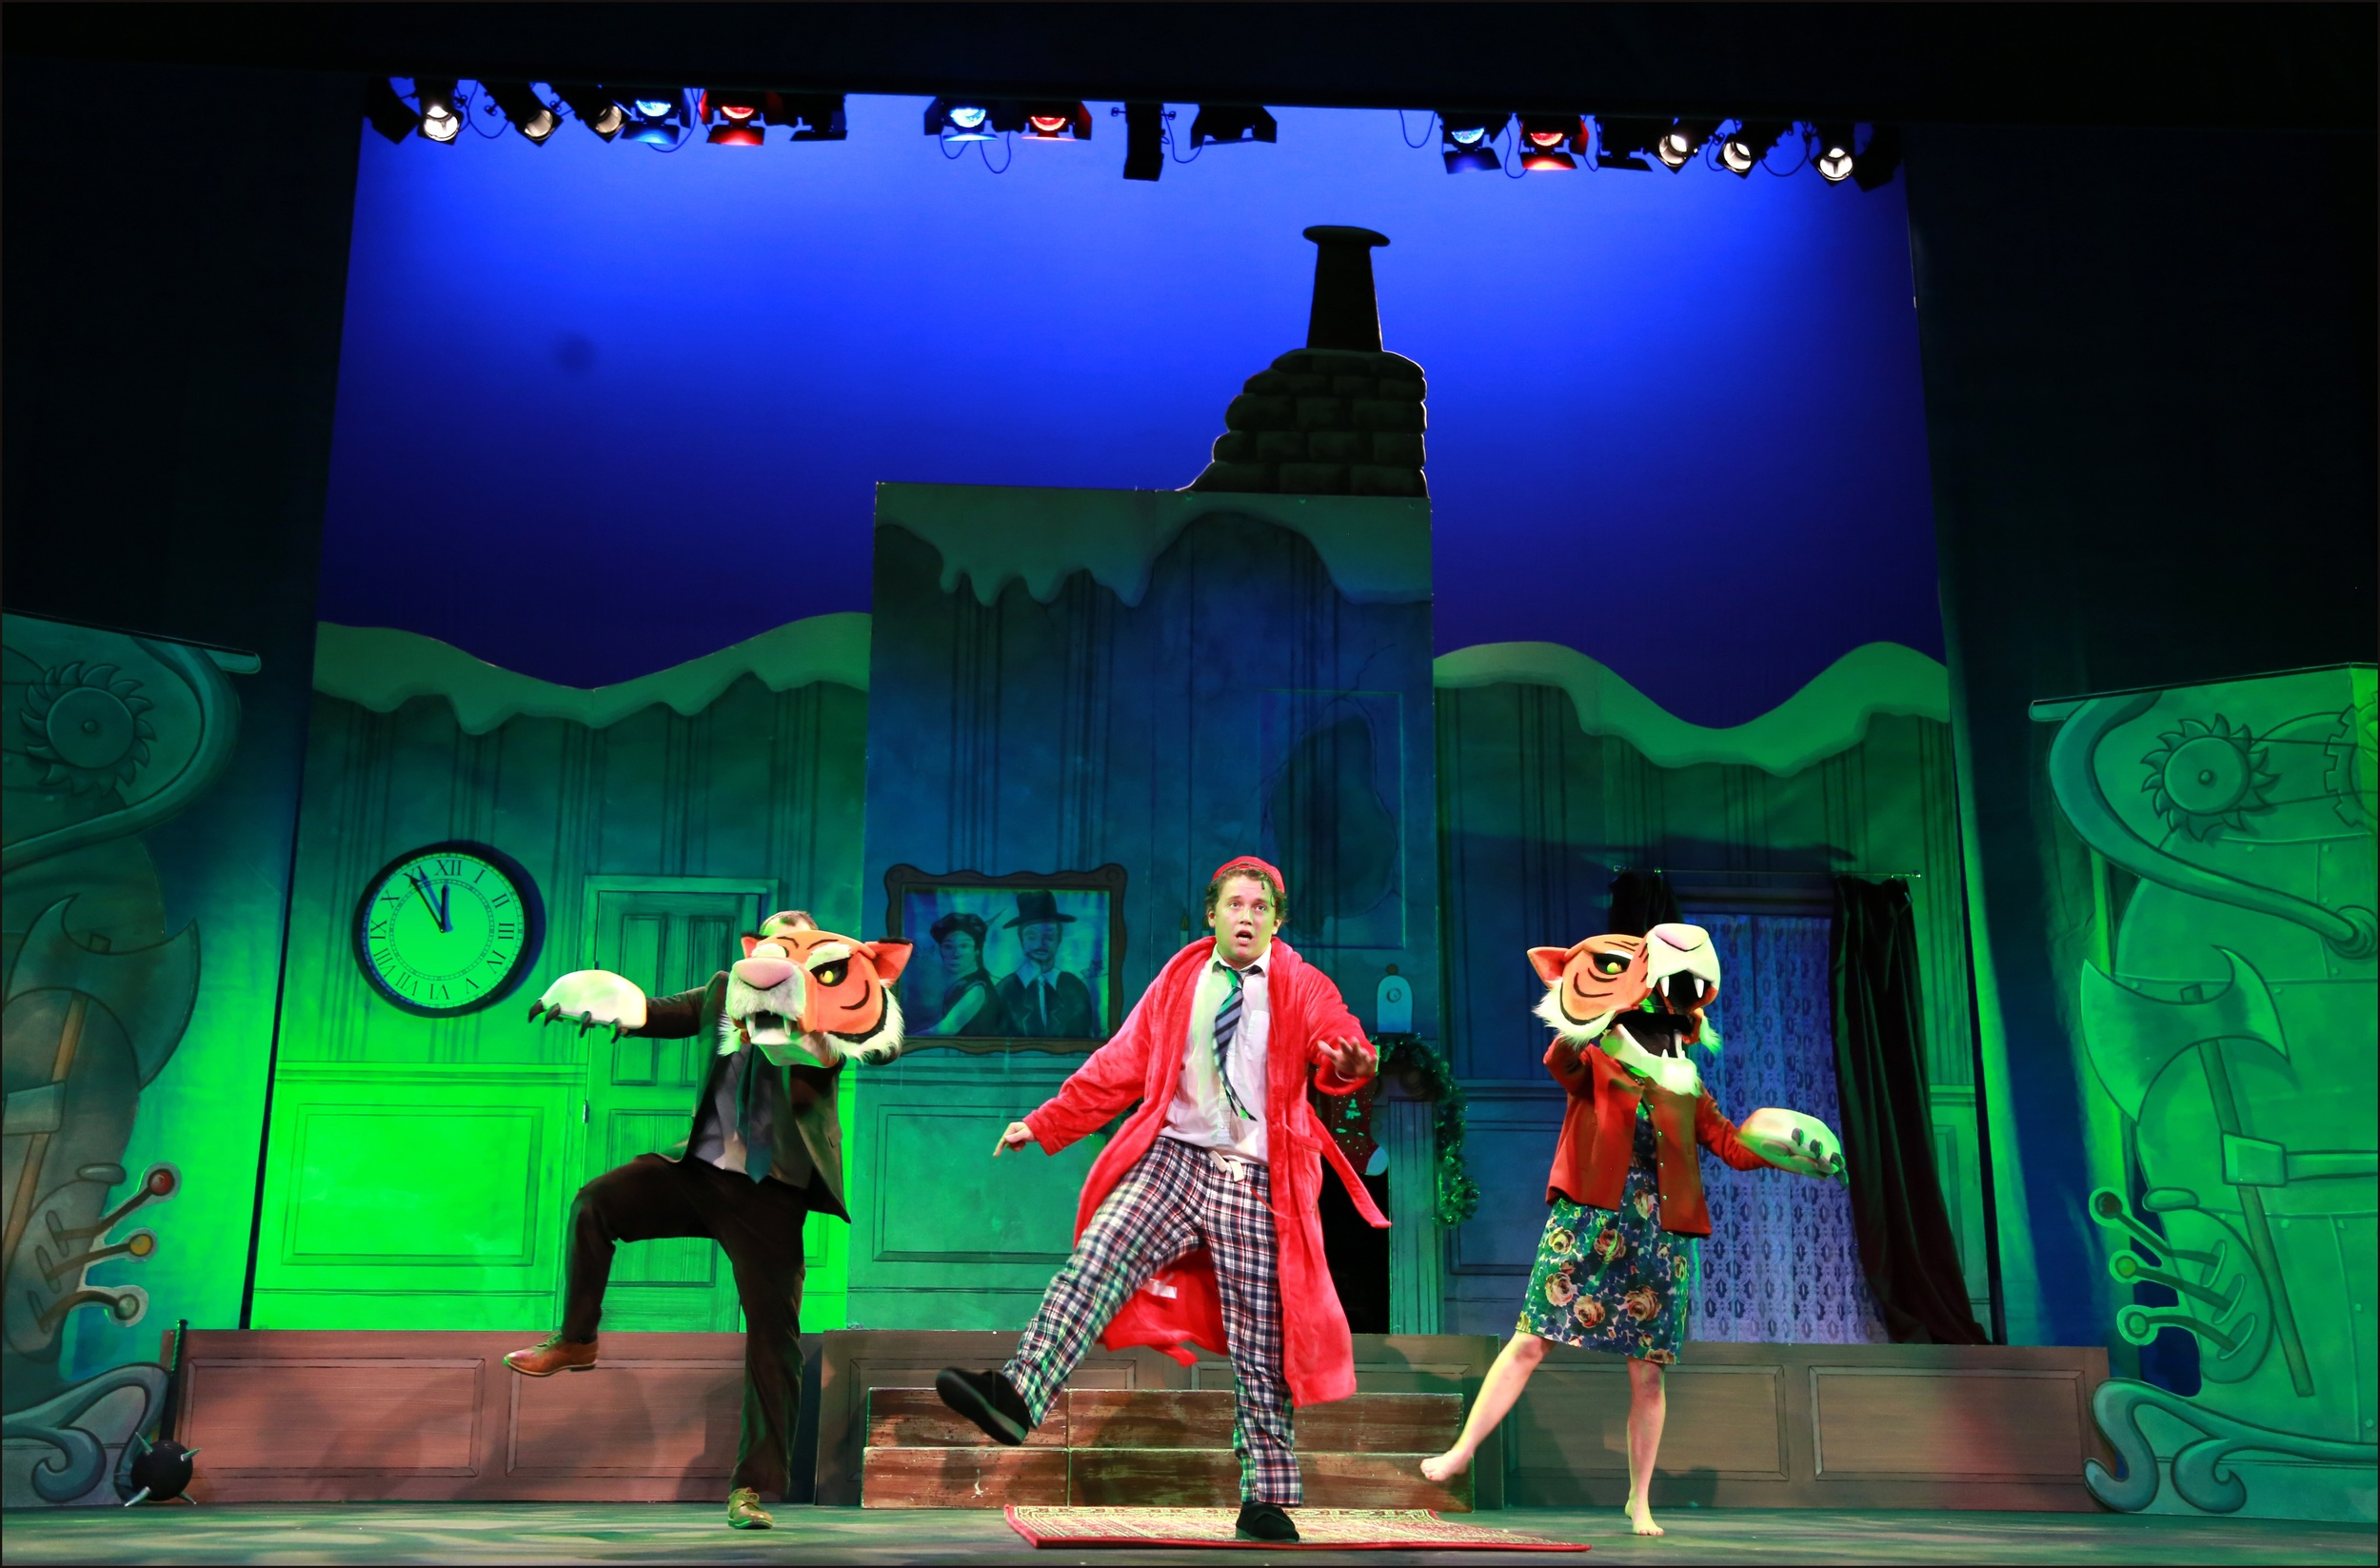 Toby Vaughan as BRADLEY BARTLEBY with Ben Tolley and Eloise Secker